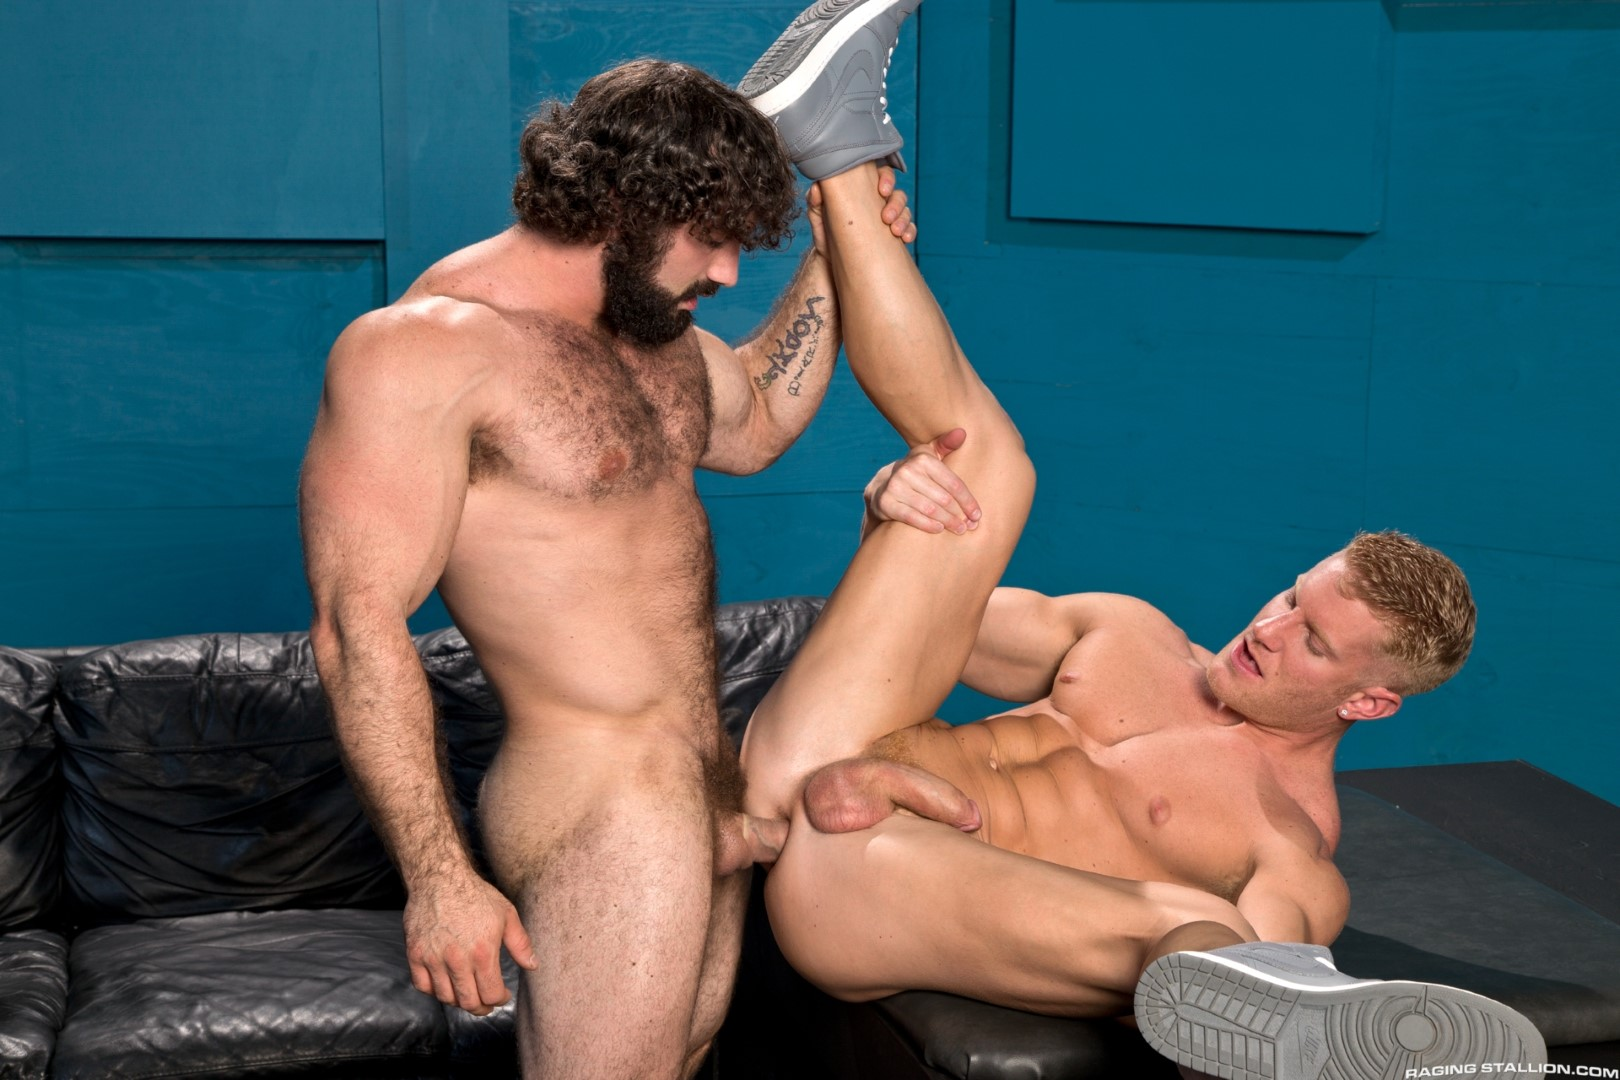 Raging Stallion Johnny V and Jaxton Wheeler Hairy Muscle Hunk Fucking Amateur Gay Porn 09 Hairy Muscle Hunk Jaxton Wheeler Fucking A Muscle Jock